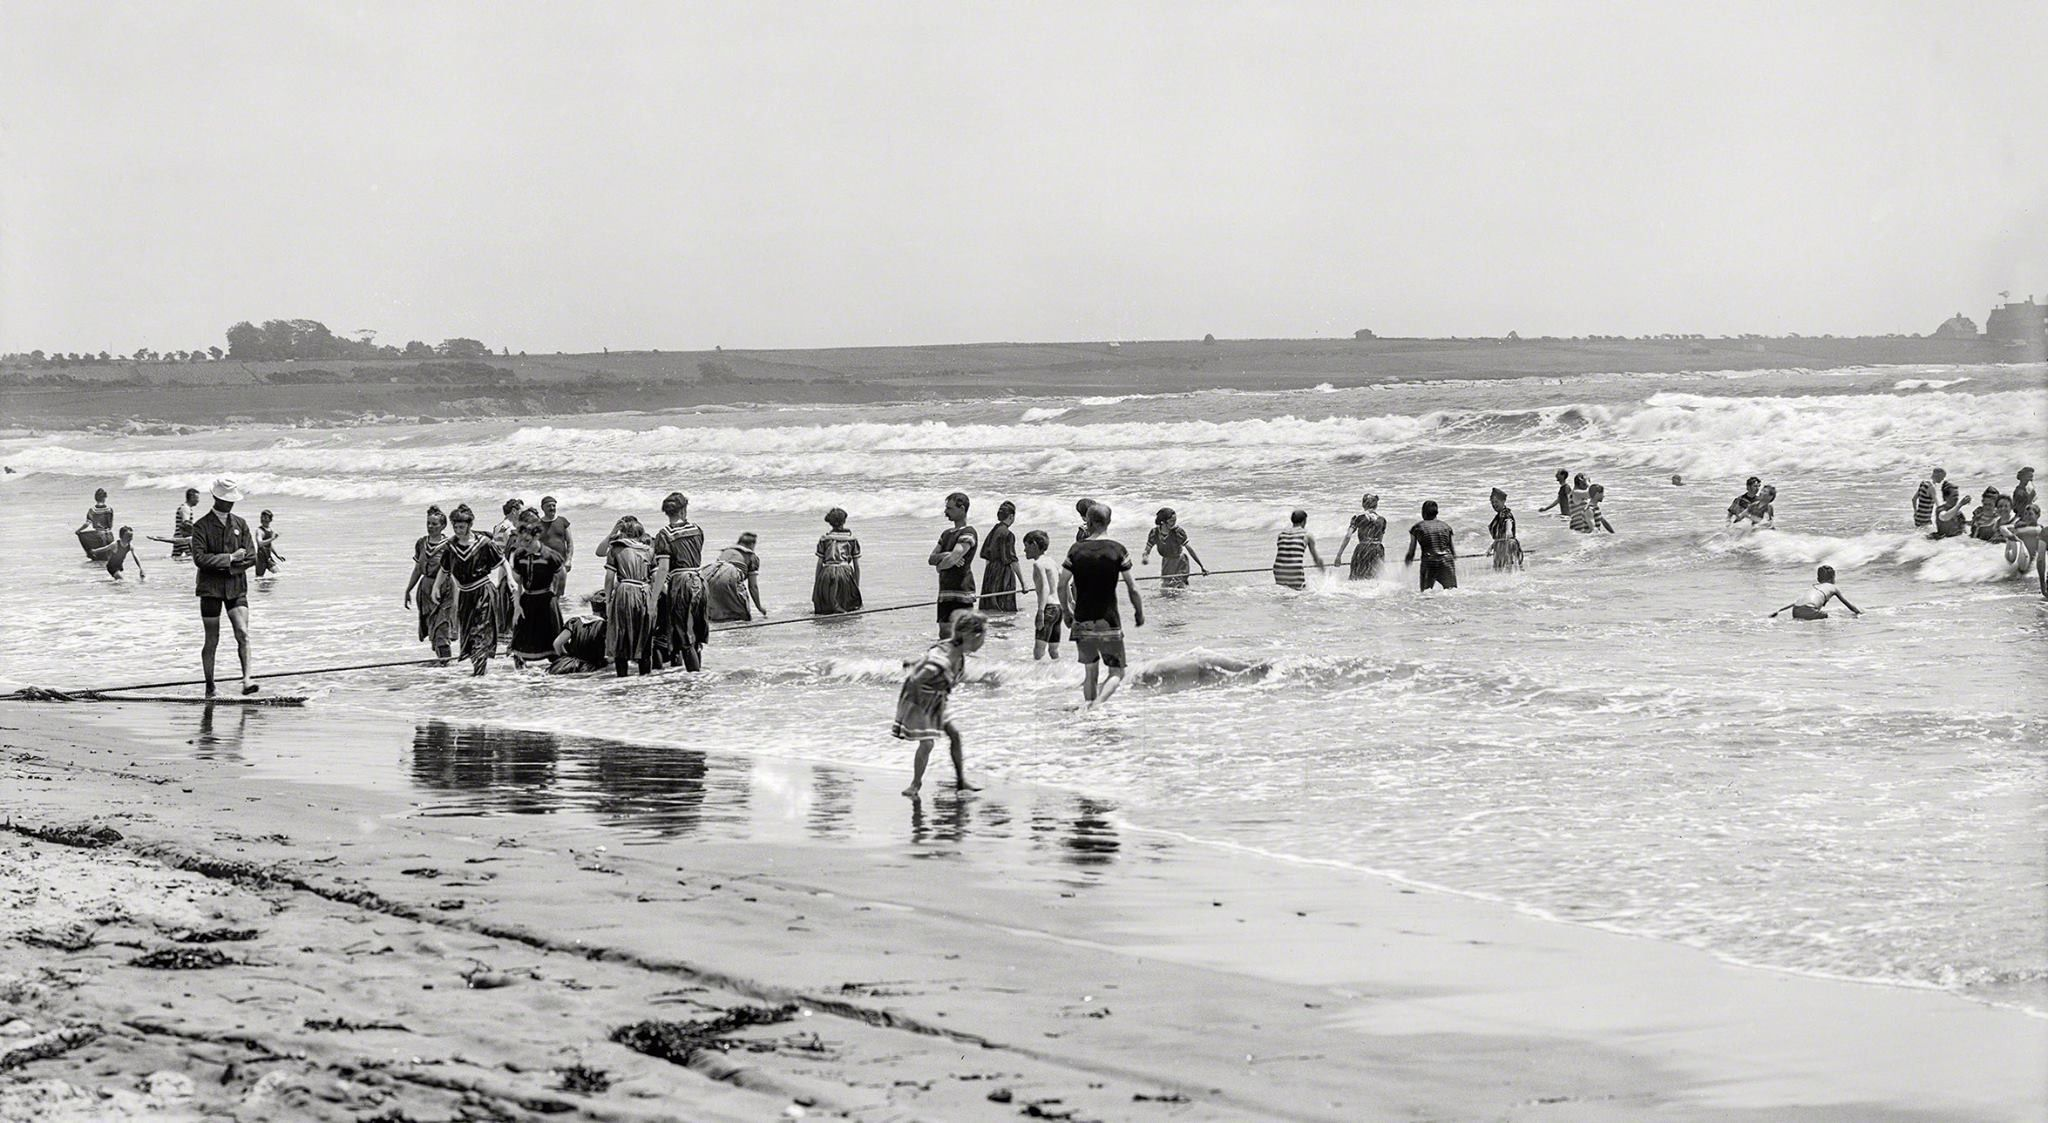 Busy bathers gather in the surf at Easton's Beach, Rhode Island, USA. Circa 1904.